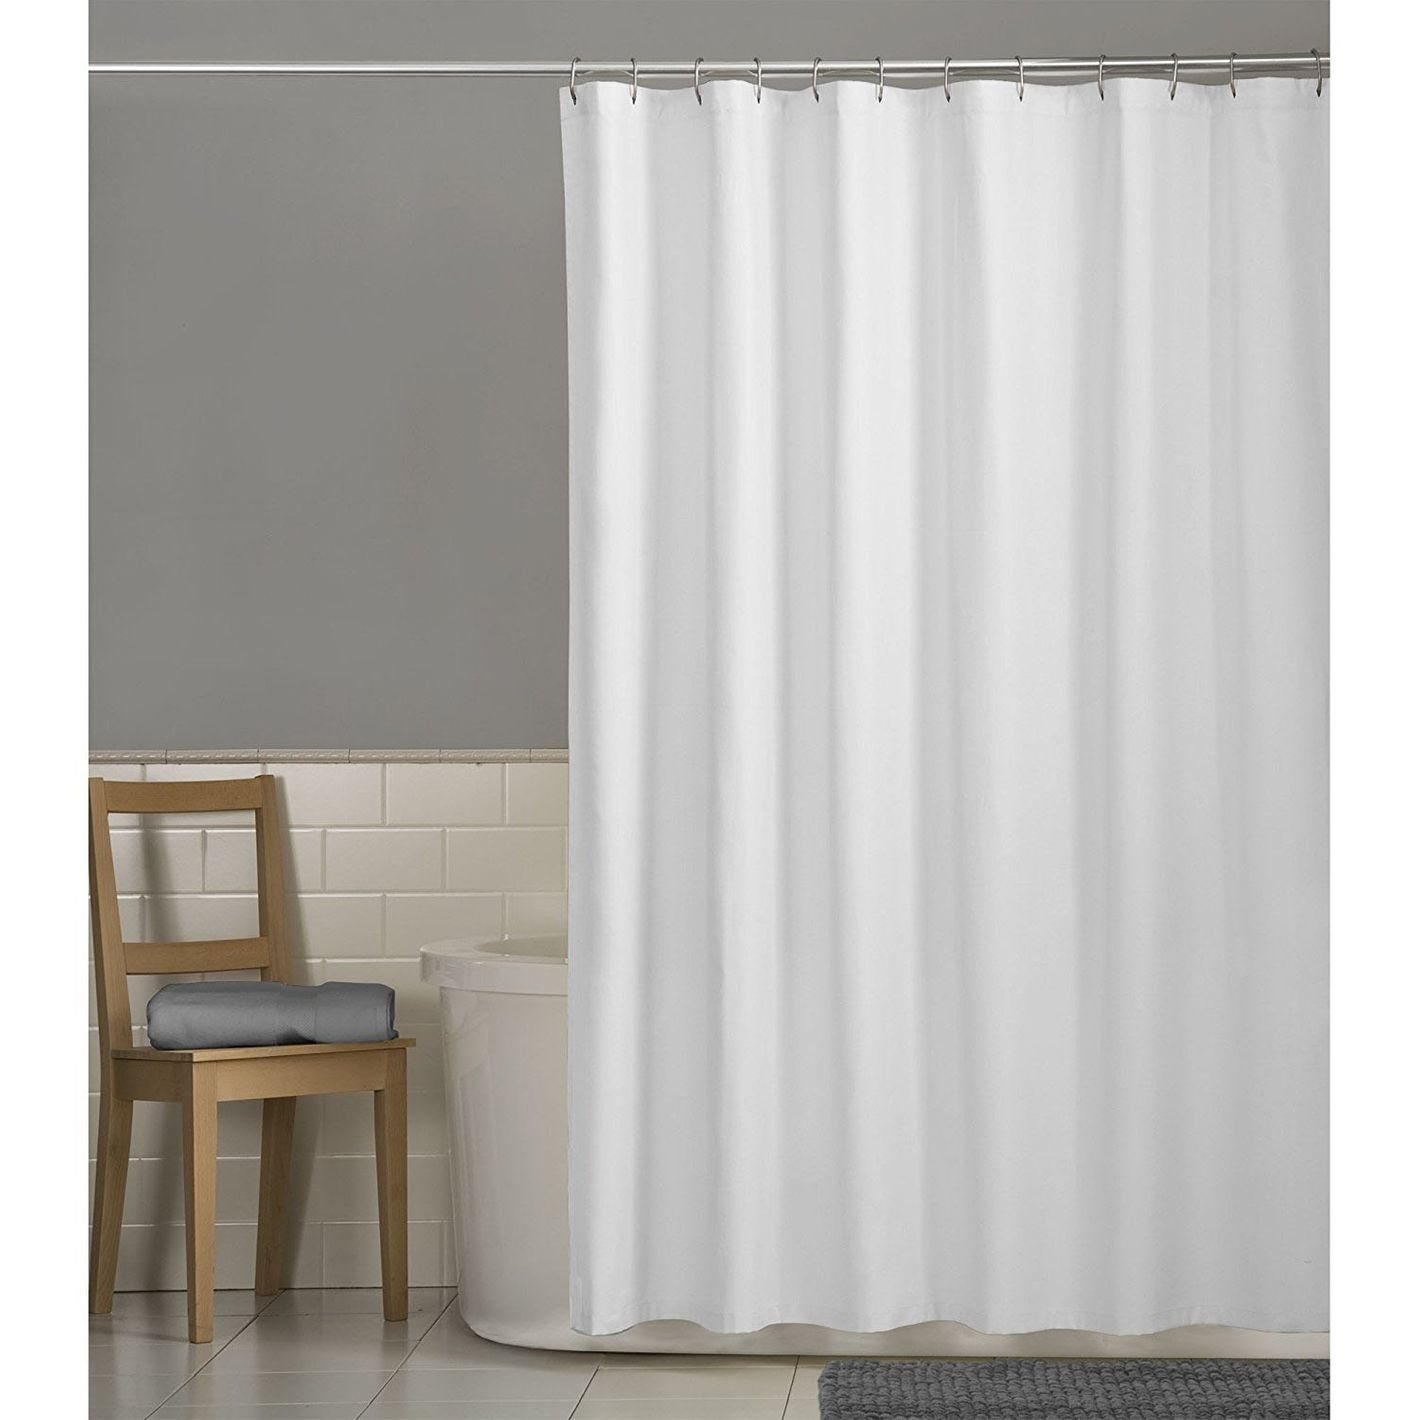 Maytex Water Repellent Fabric Shower Curtain